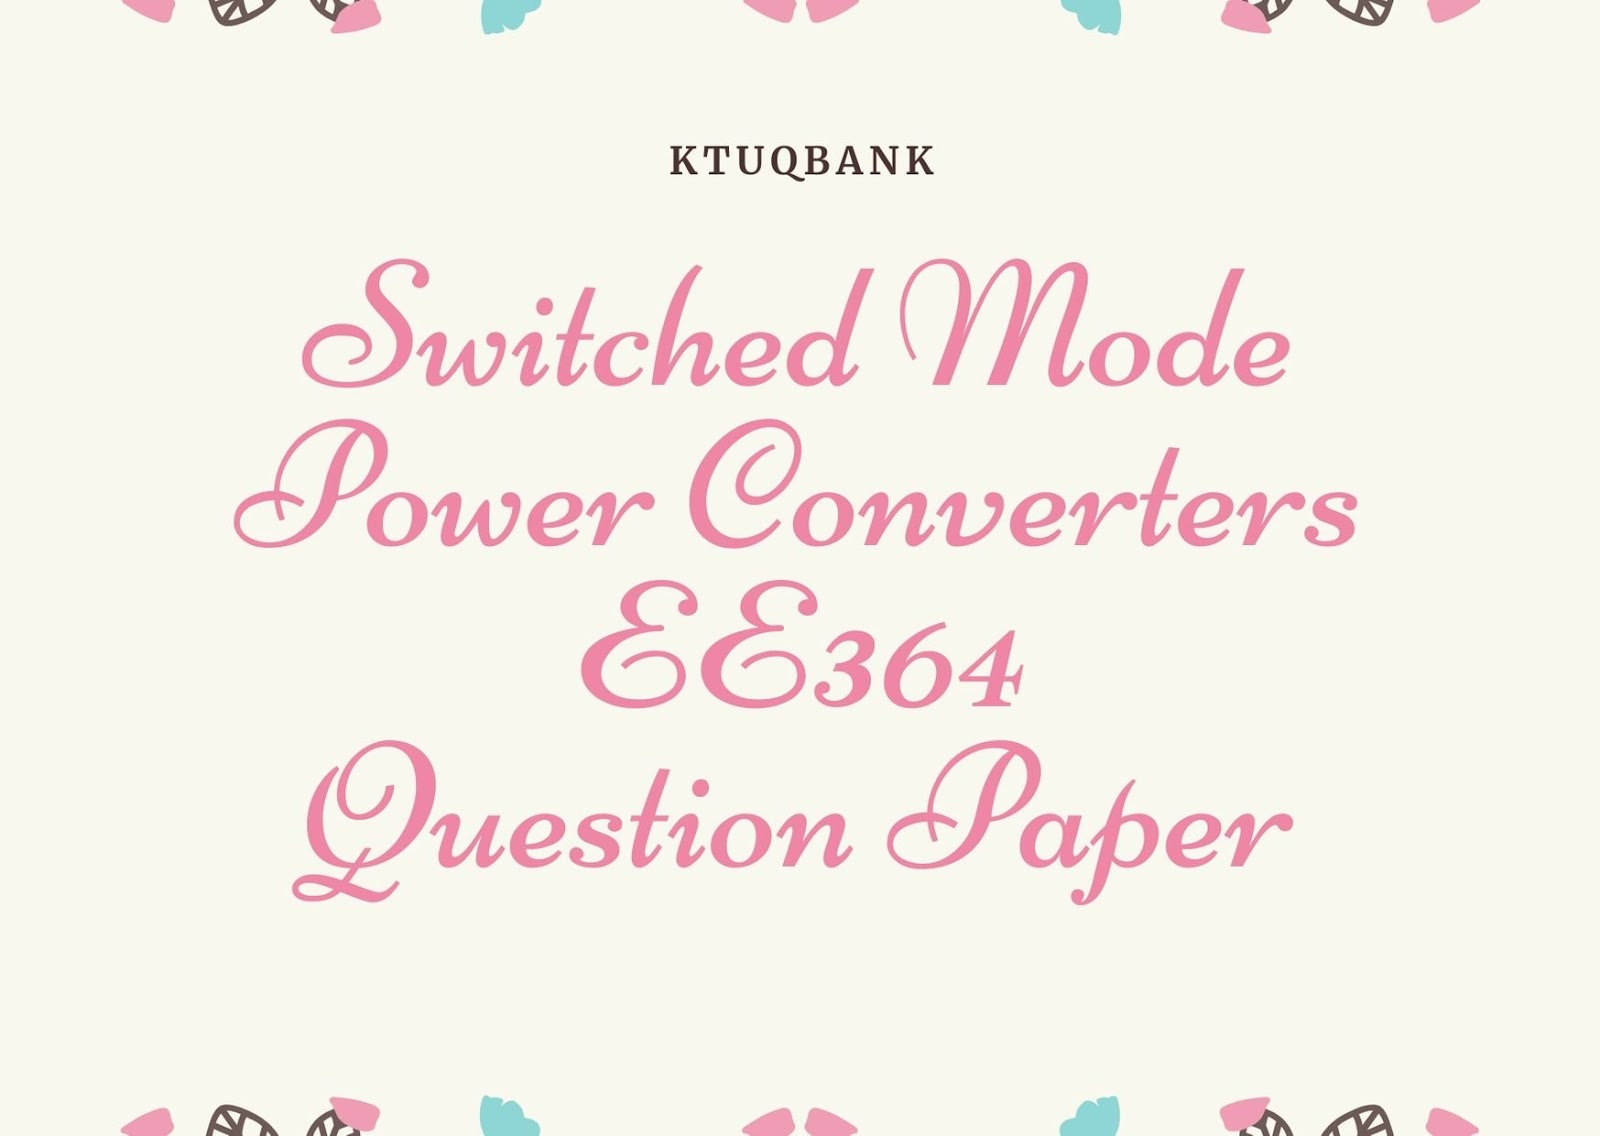 Switched Mode Power Converters | EE364 | Question Papers (2015 batch)